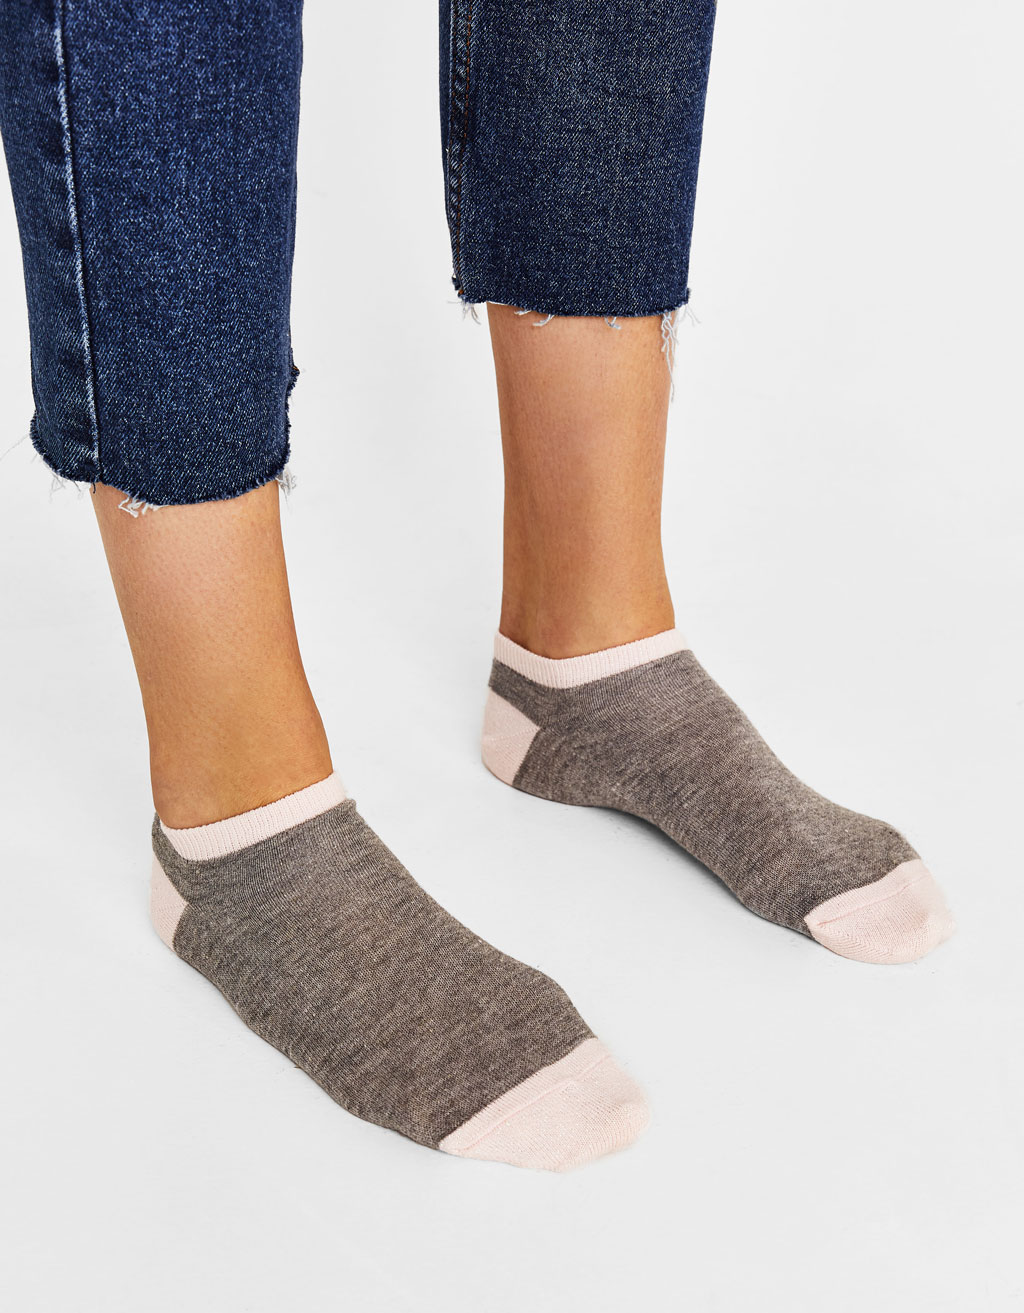 Ankle socks with shimmer thread